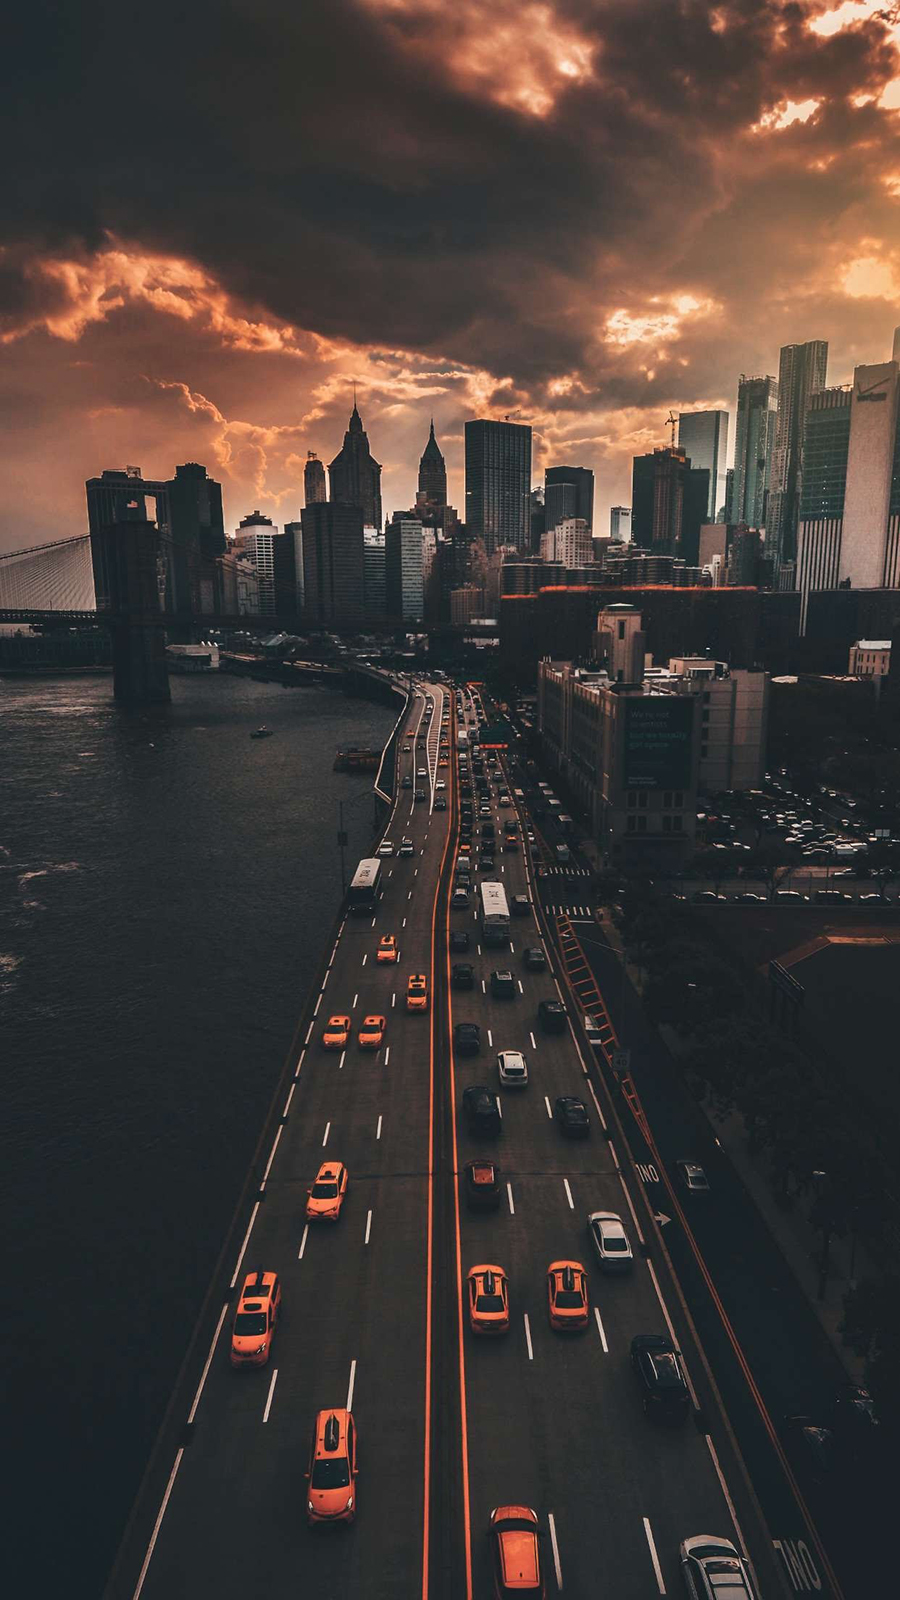 City Aesthetic Wallpapers Free Download